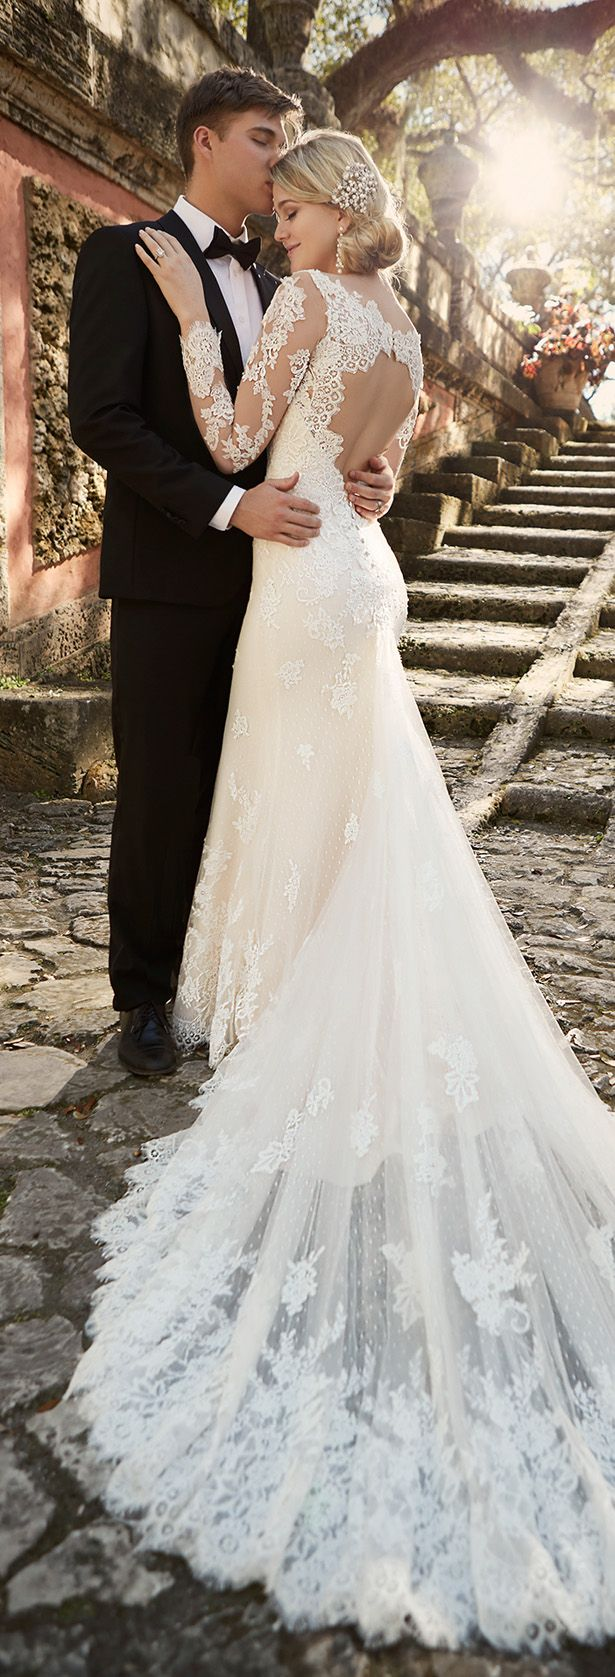 Stunning Winter Wedding Dresses : Stunning winter wedding dresses belle the magazine